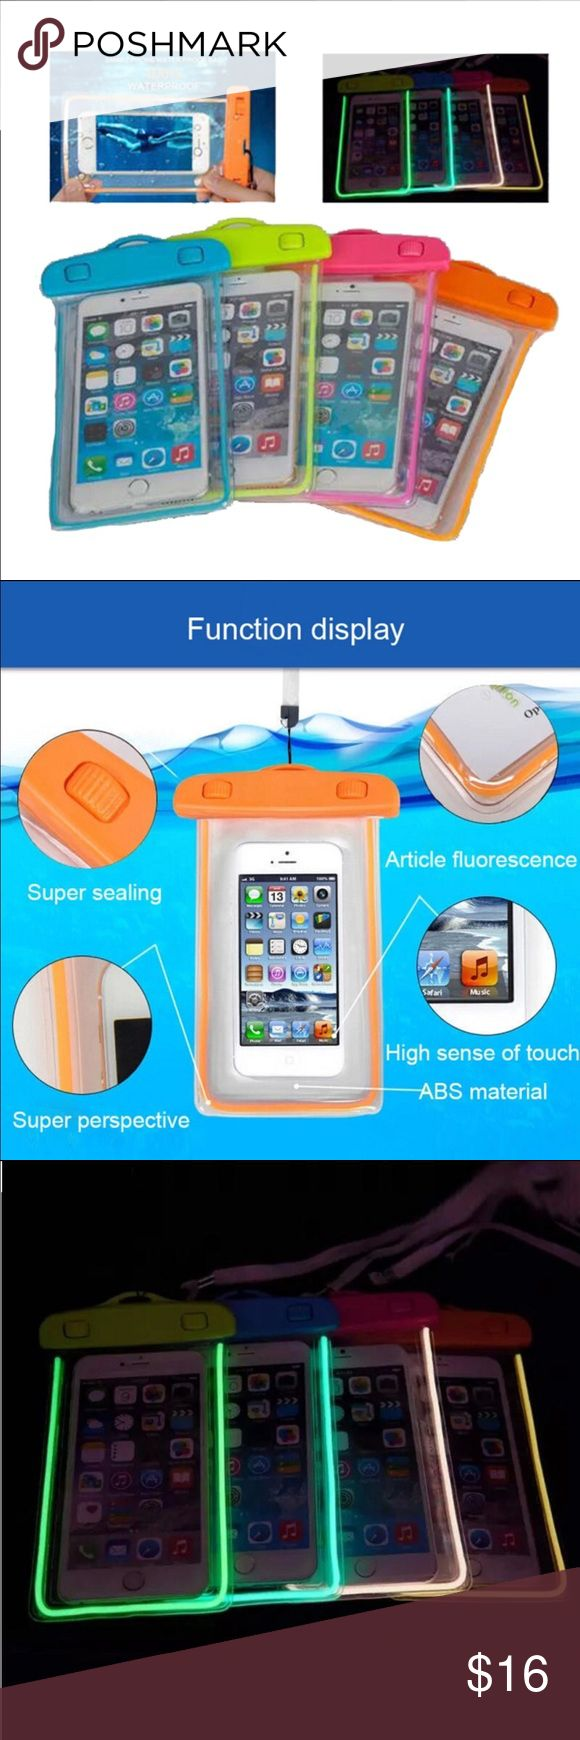 100% Sealed Waterproof Phone Case New Fluorescence Waterproof Durable Water proof Bag Pouch for iphone 5 5s se 6 6s plus transparent underwater back cover case. Accessories Phone Cases